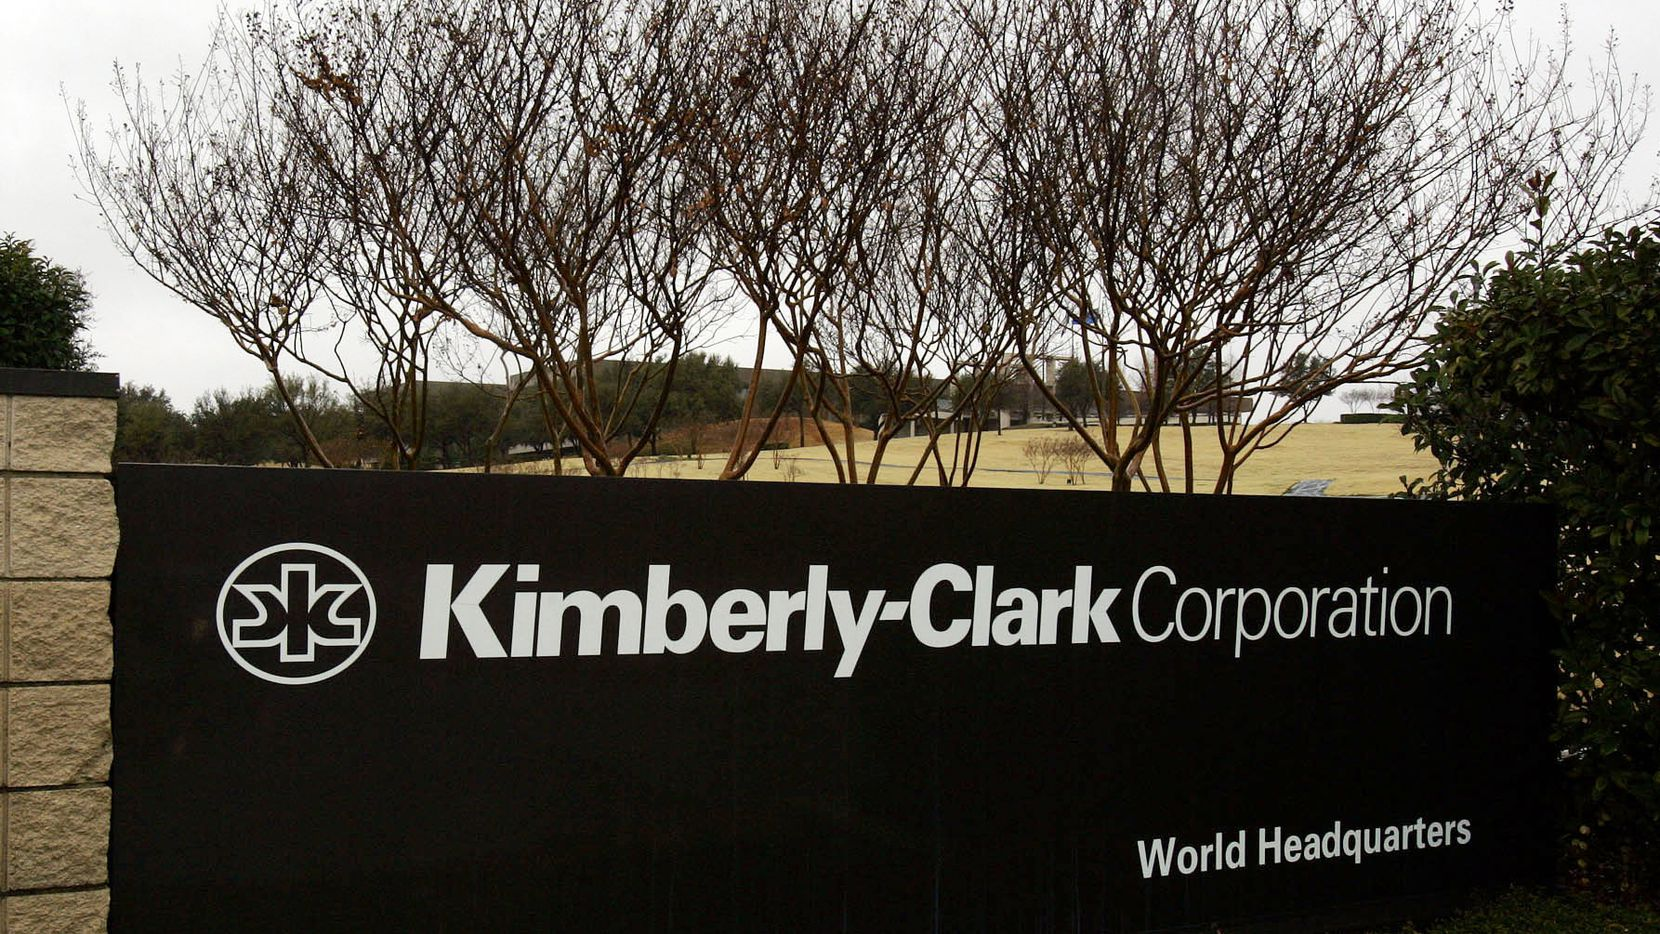 While office sales tumbled, Kimberly-Clark's tissue sales to retail consumers surged 11% in North America, although that pace was slower than the previous quarter.